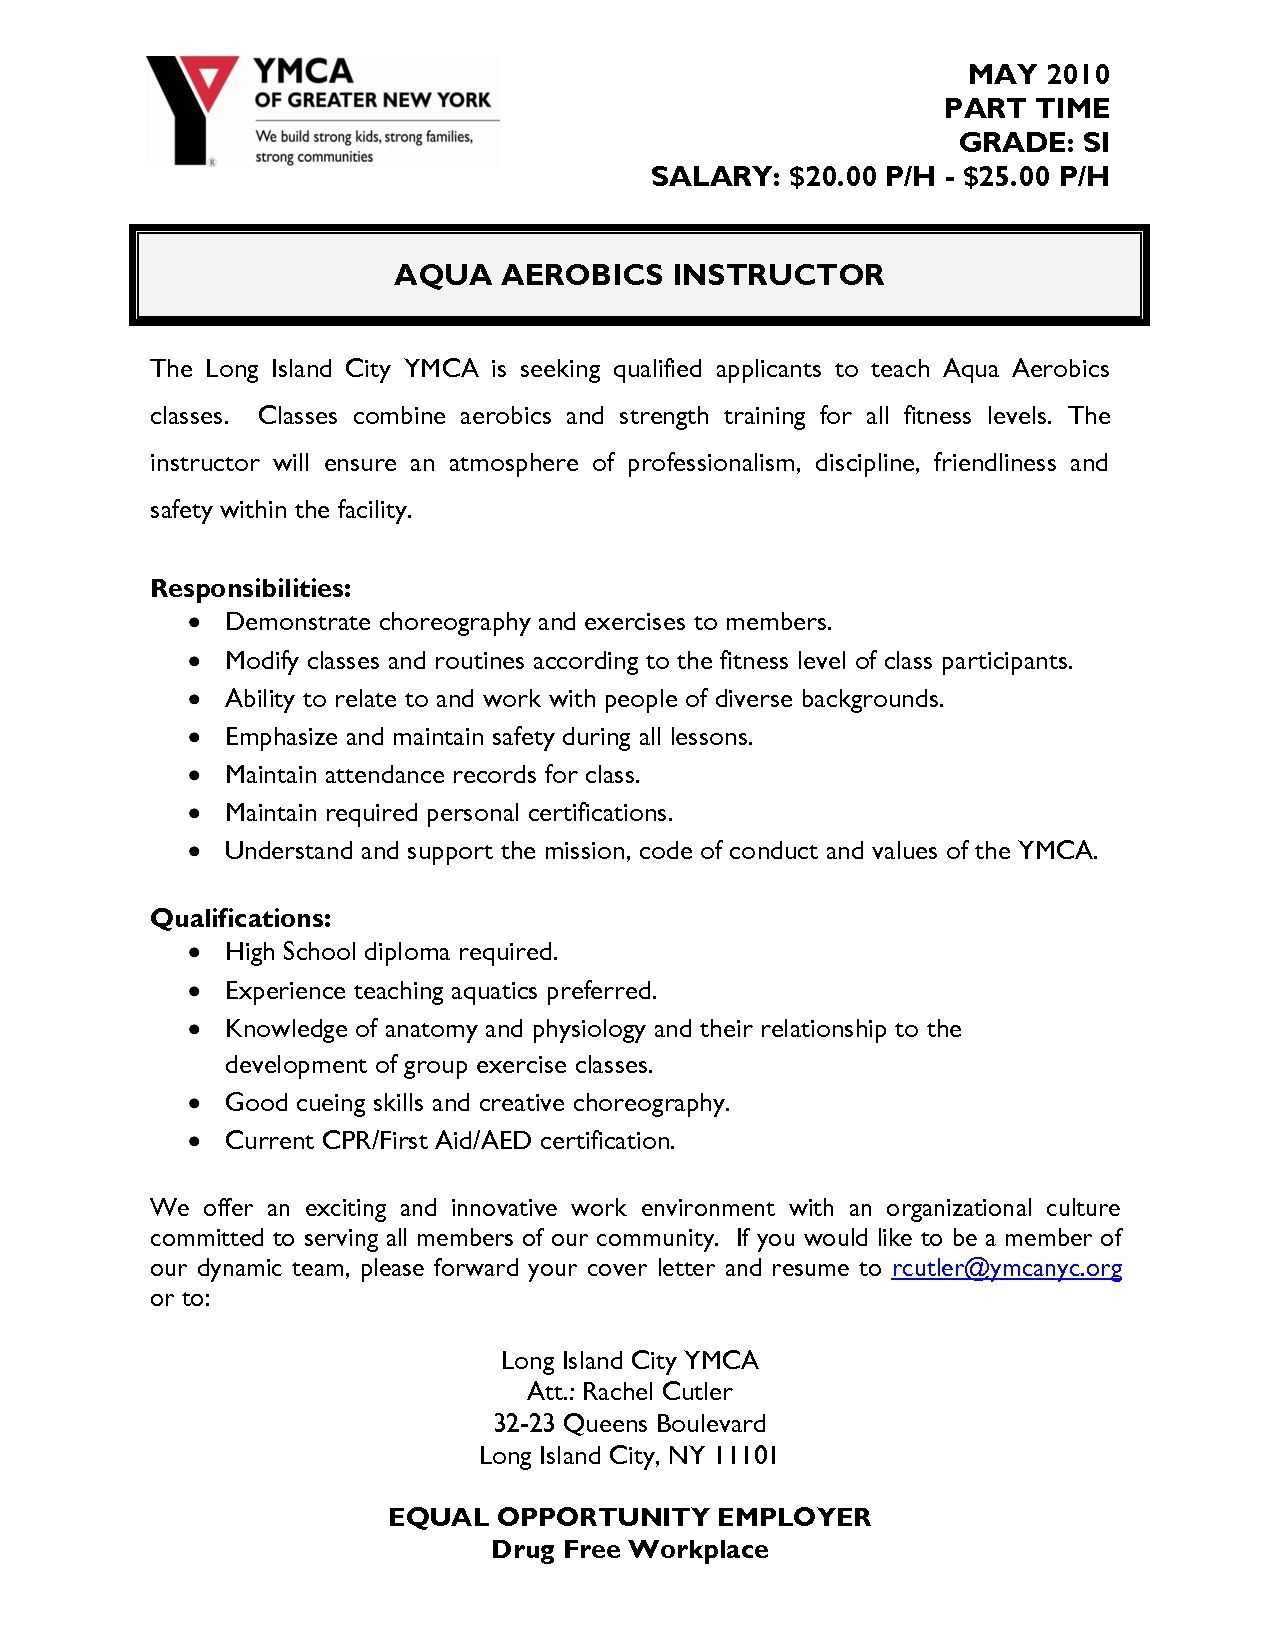 Sample Resume Zumba Instructor in 2020 (With images